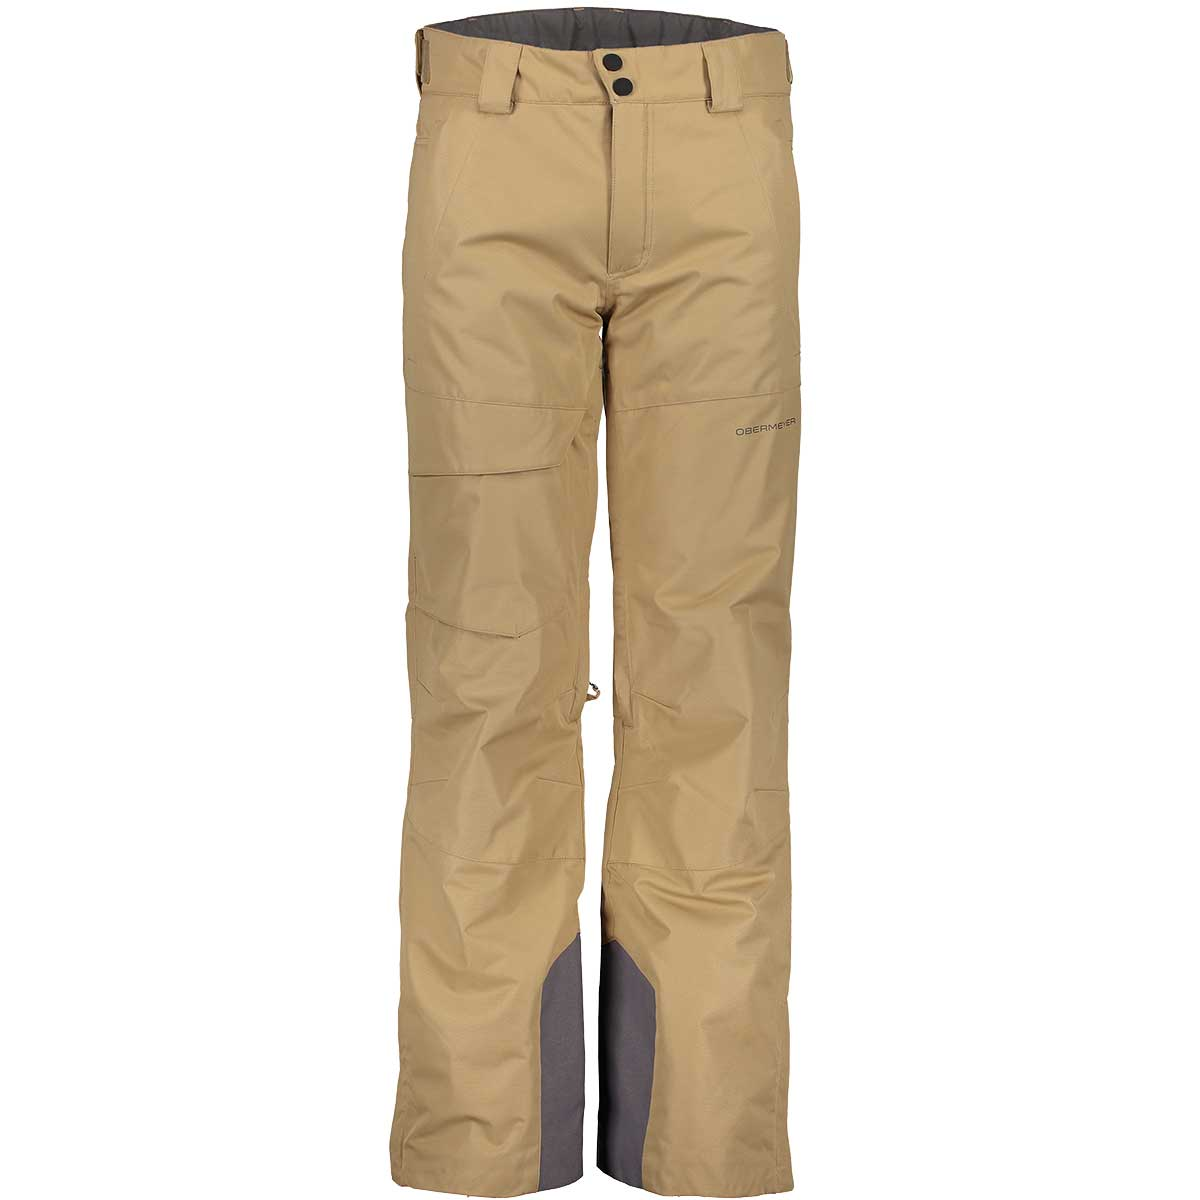 Obermeyer men's Orion Pant in Pharaoh front view